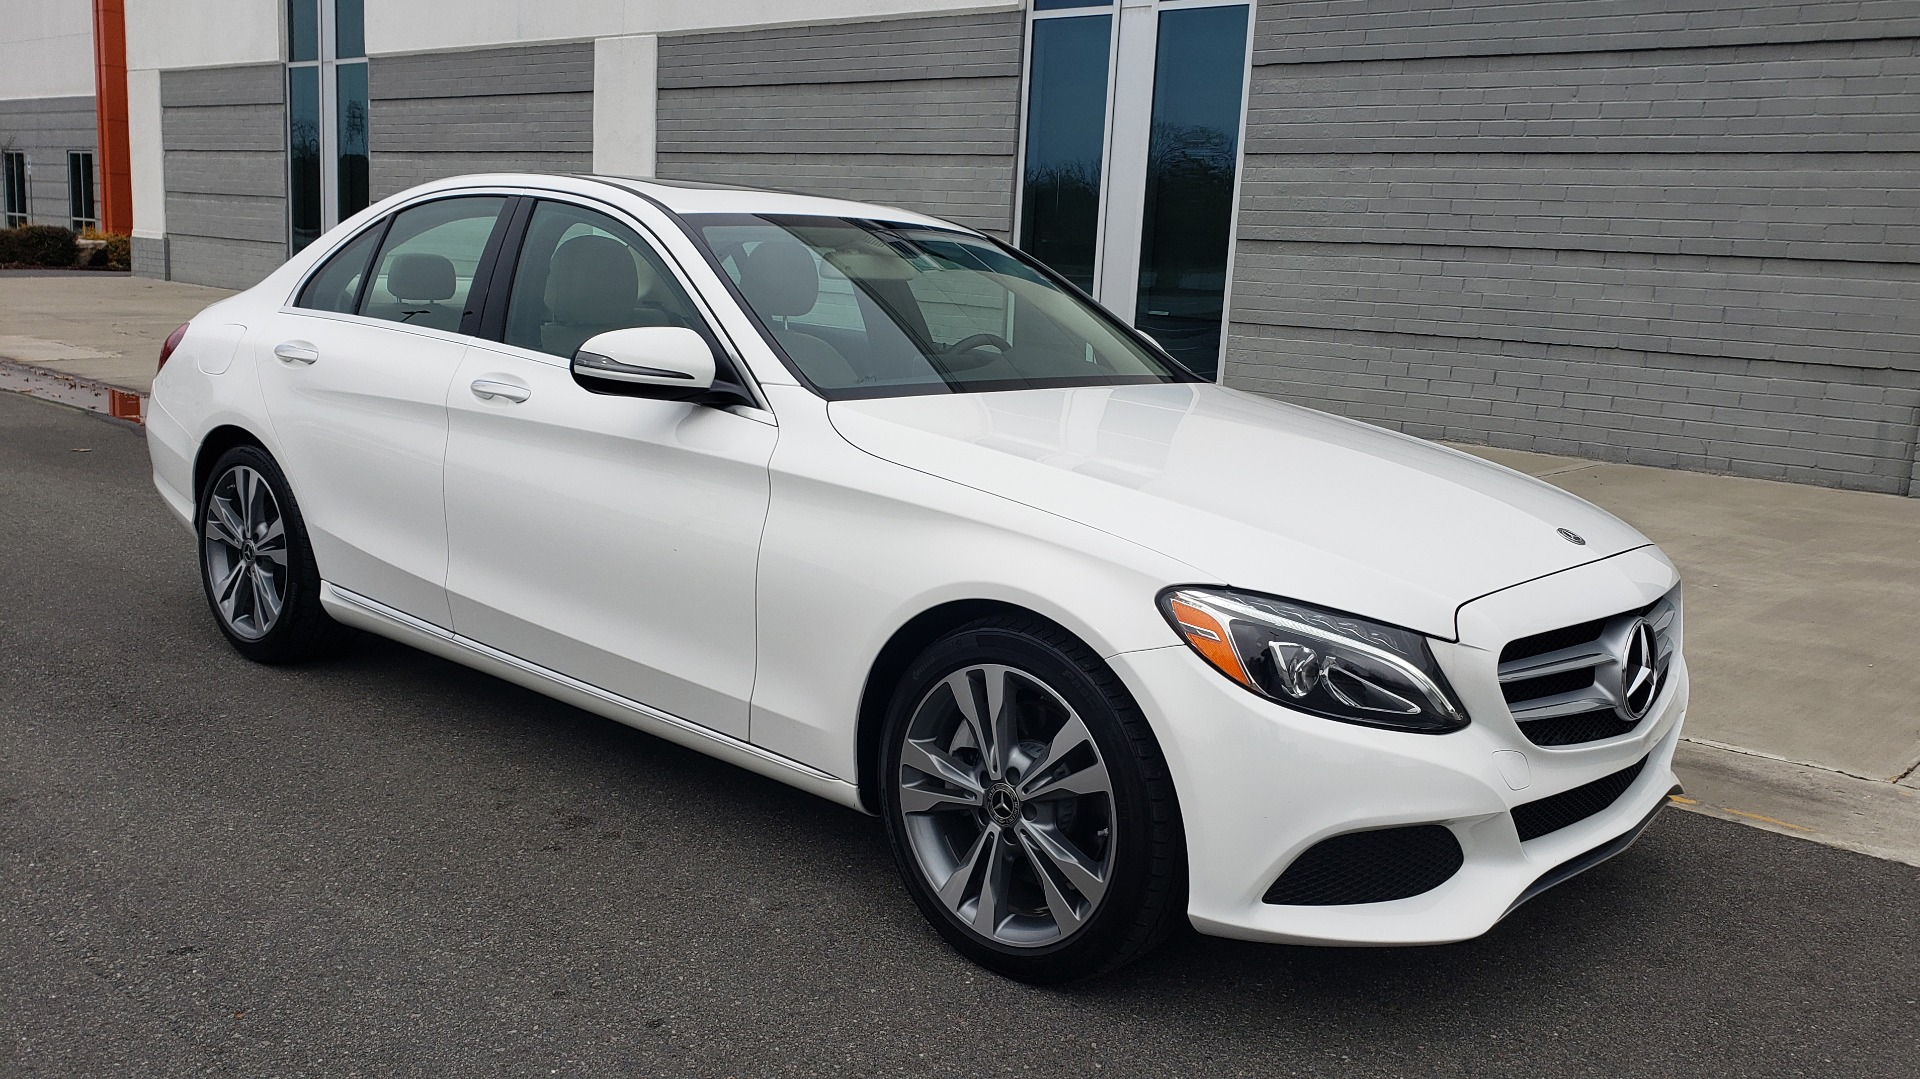 Used 2018 Mercedes-Benz C-CLASS C 300 PREMIUM / NAV / HTD STS / APPLE CARPLAY / REARVIEW for sale Sold at Formula Imports in Charlotte NC 28227 4